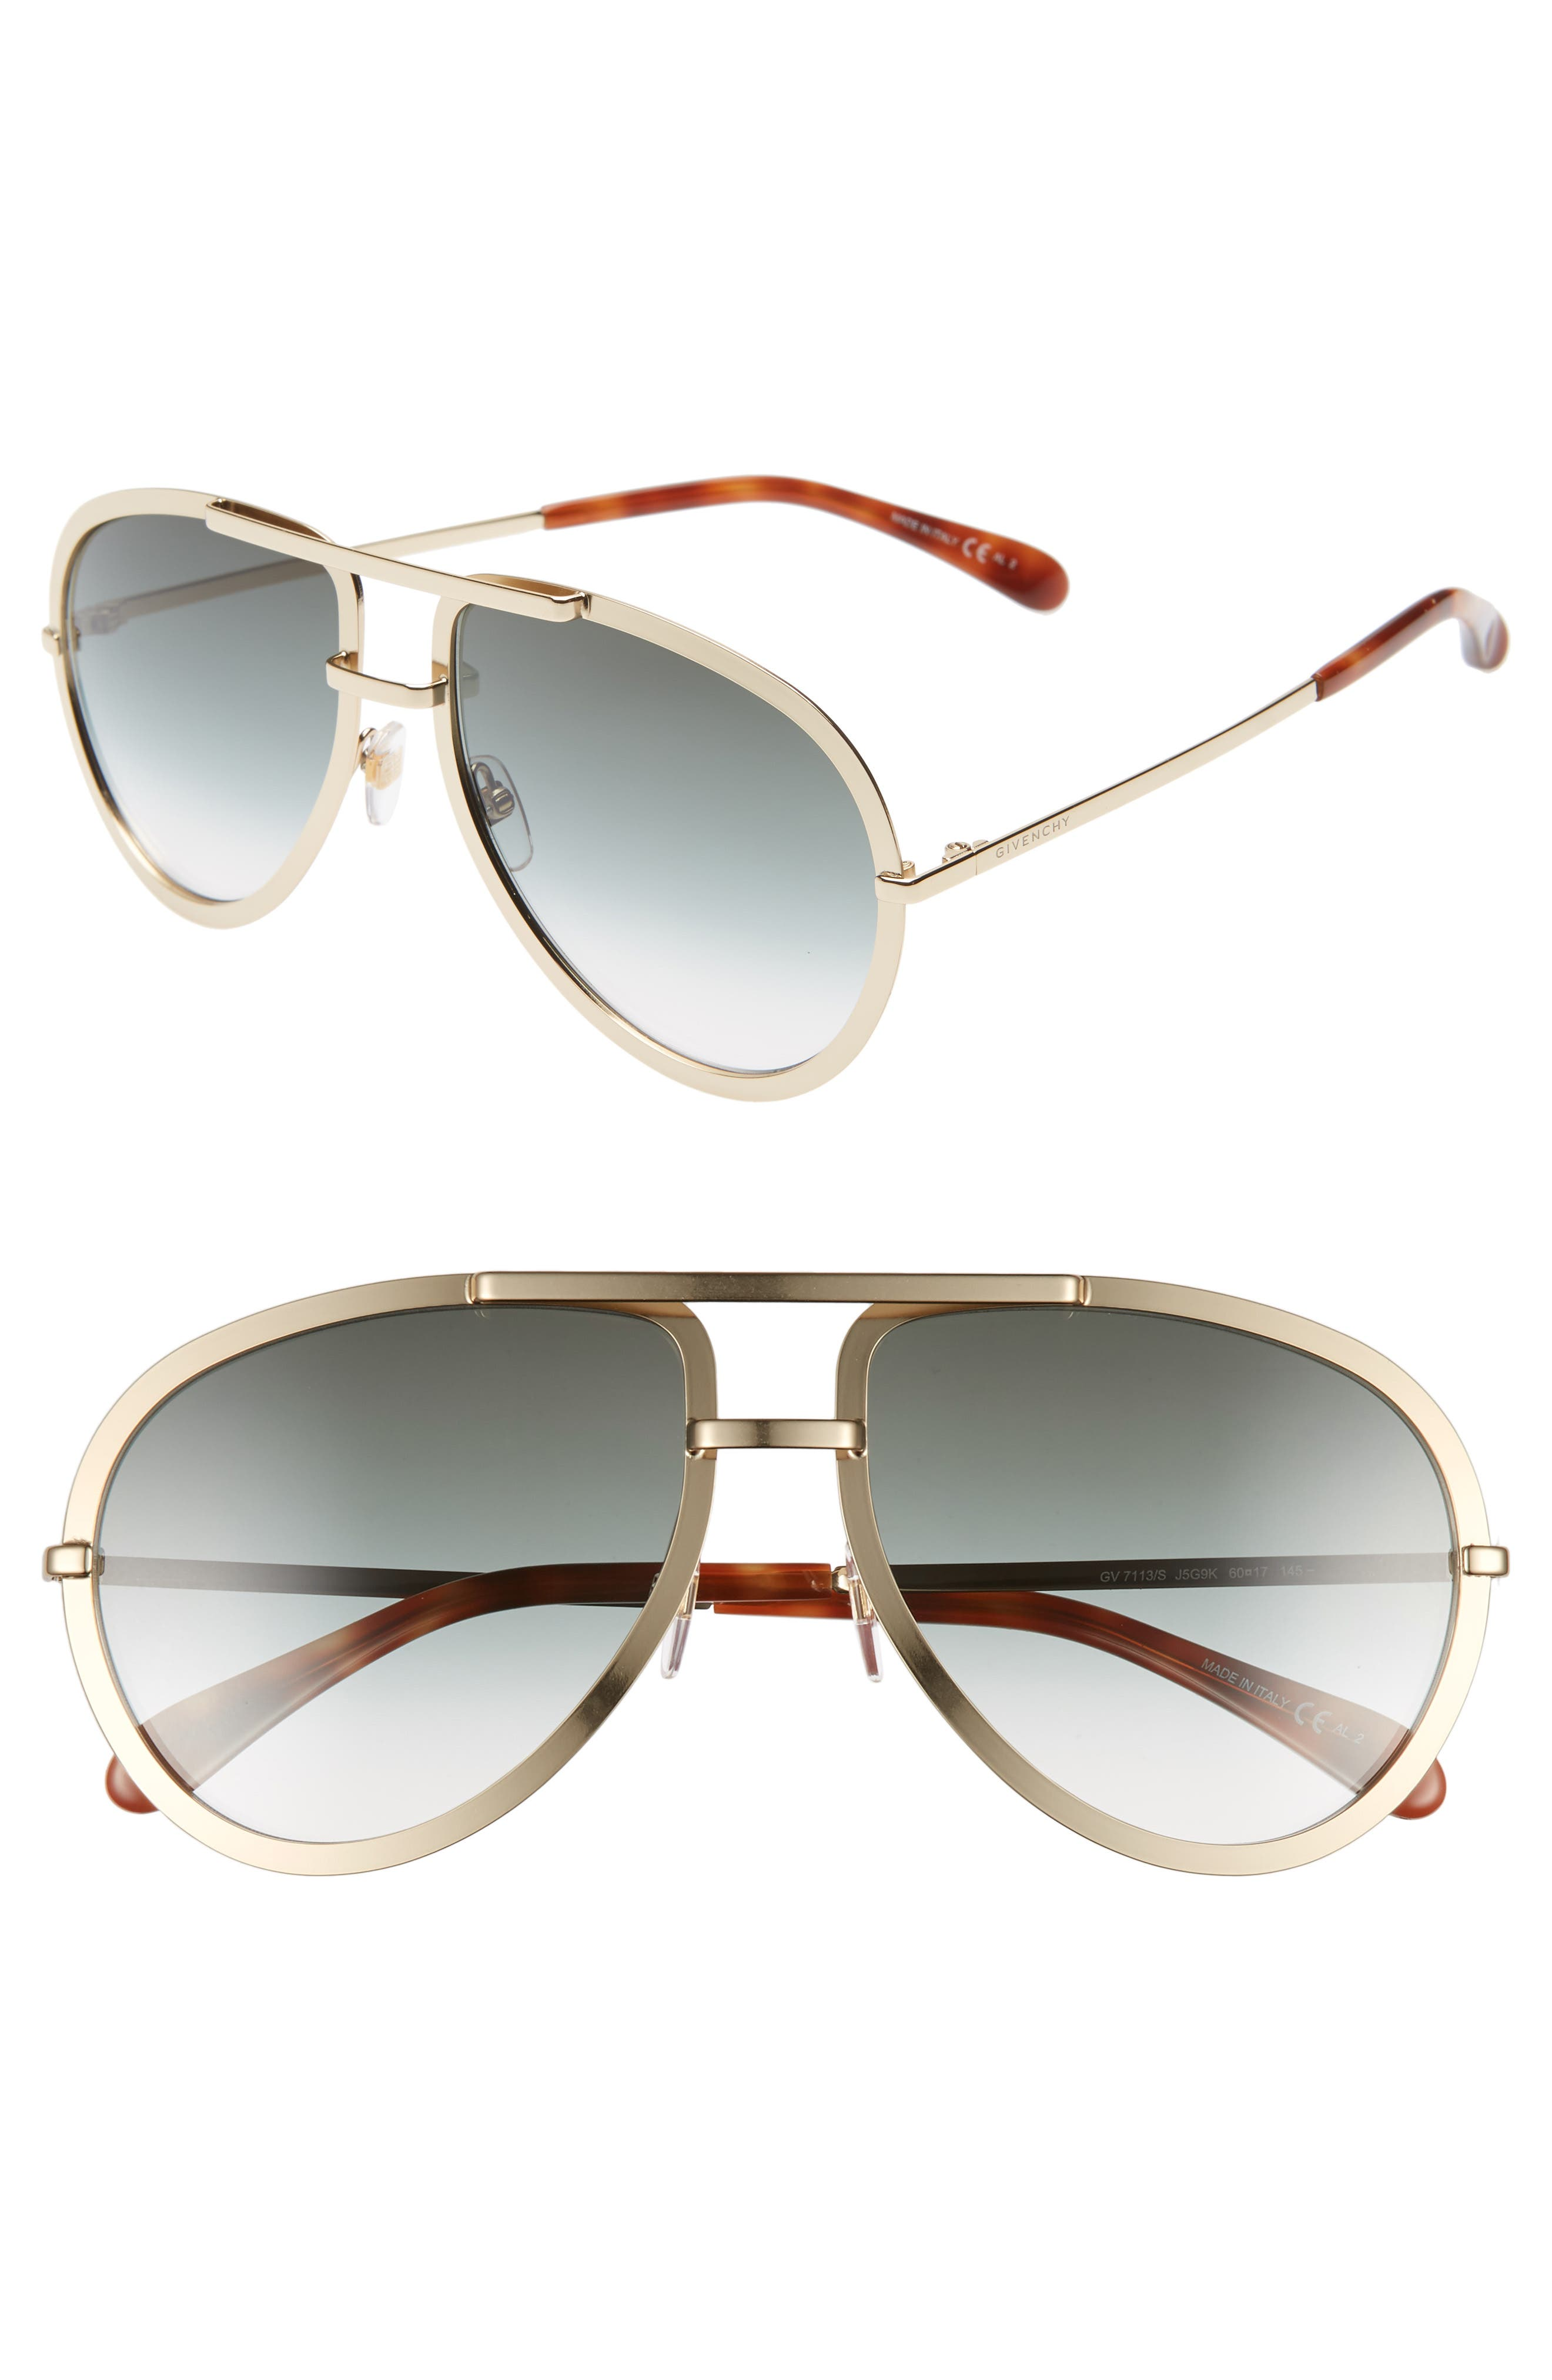 Givenchy 60Mm Aviator Sunglasses - Gold